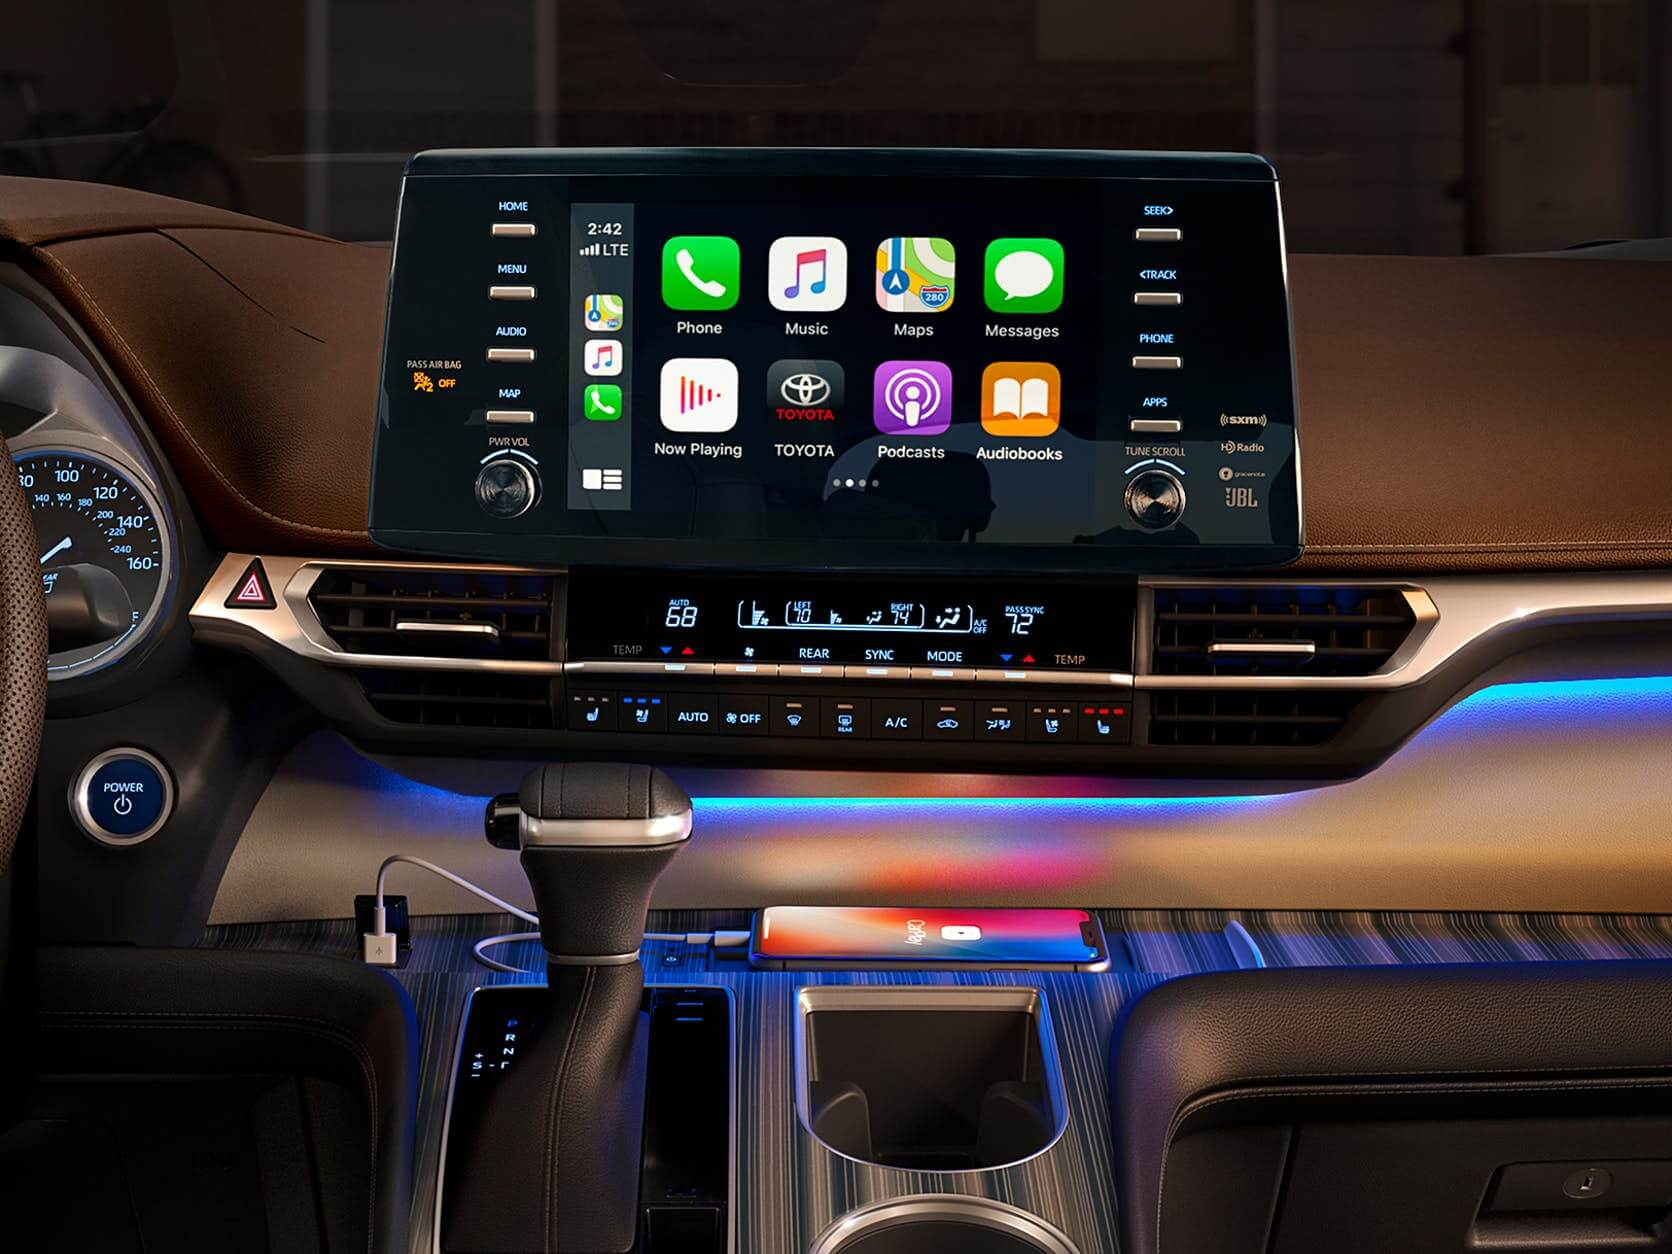 New Toyota Sienna touch display with apple carplay